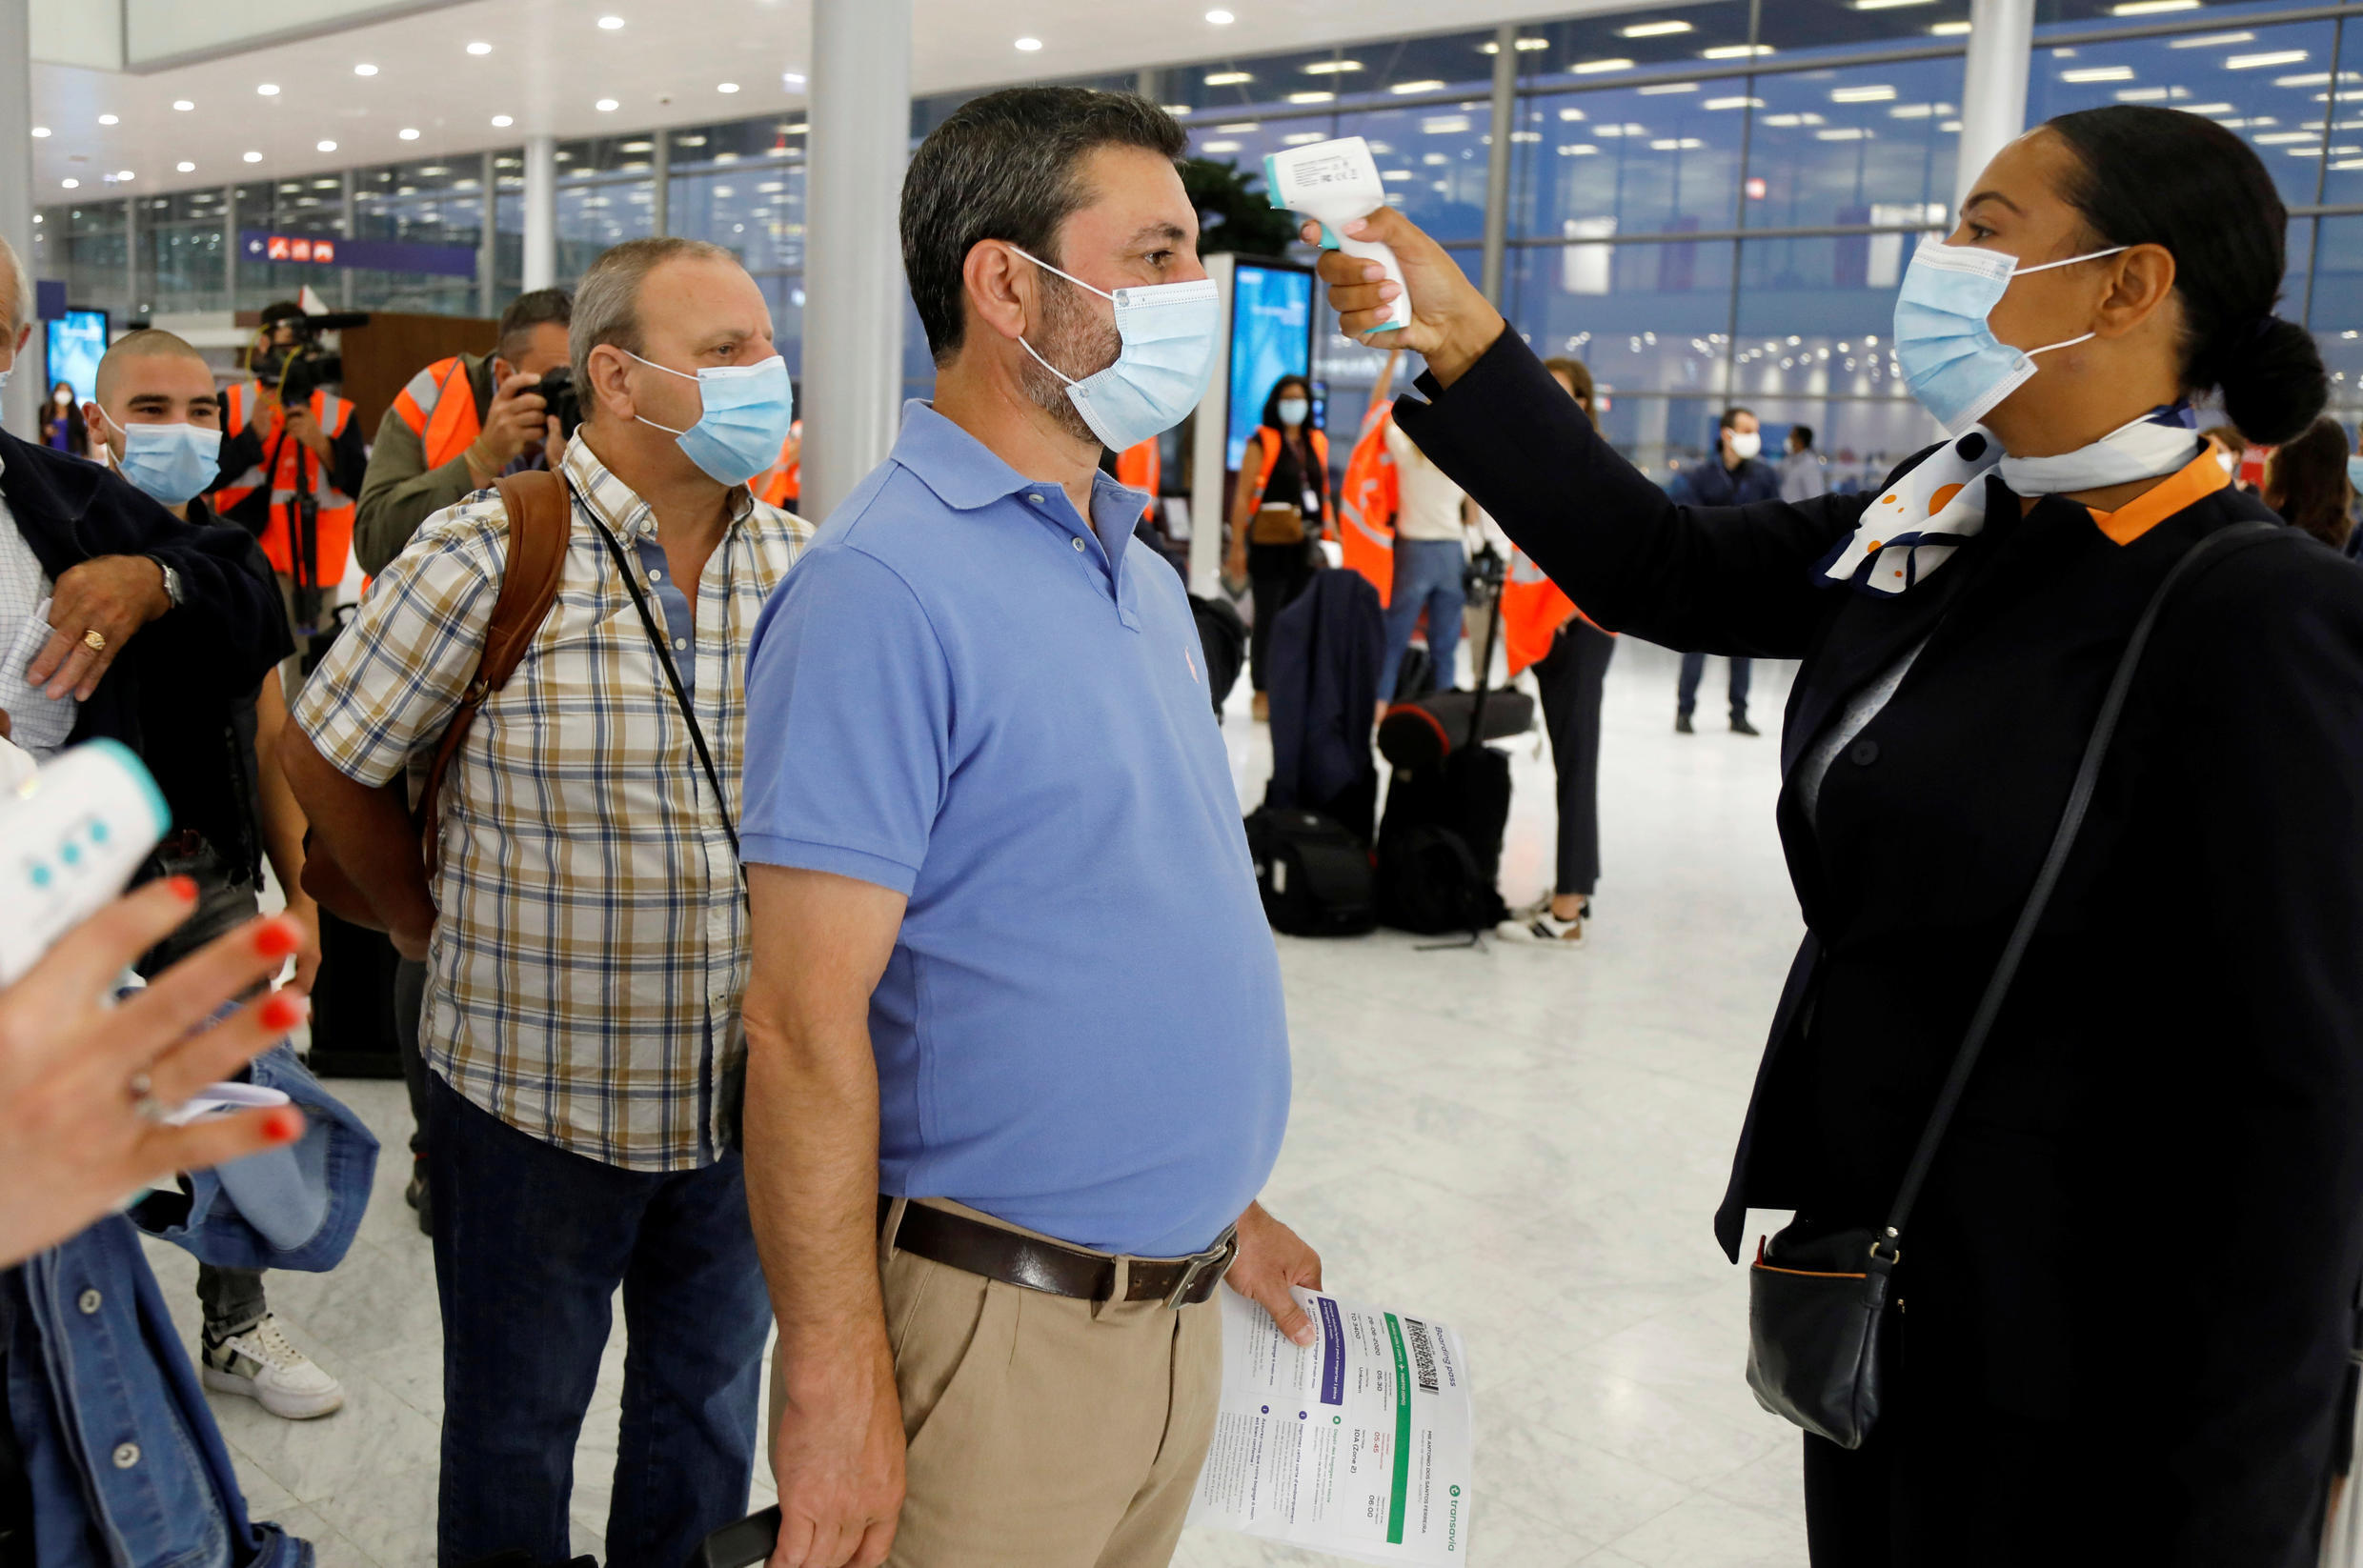 A worker in protective gear sprays disinfectant at Paris-Orly Airport on its re-opening day after shutting due to Covid-19 pandemic,  26 June, 2020.